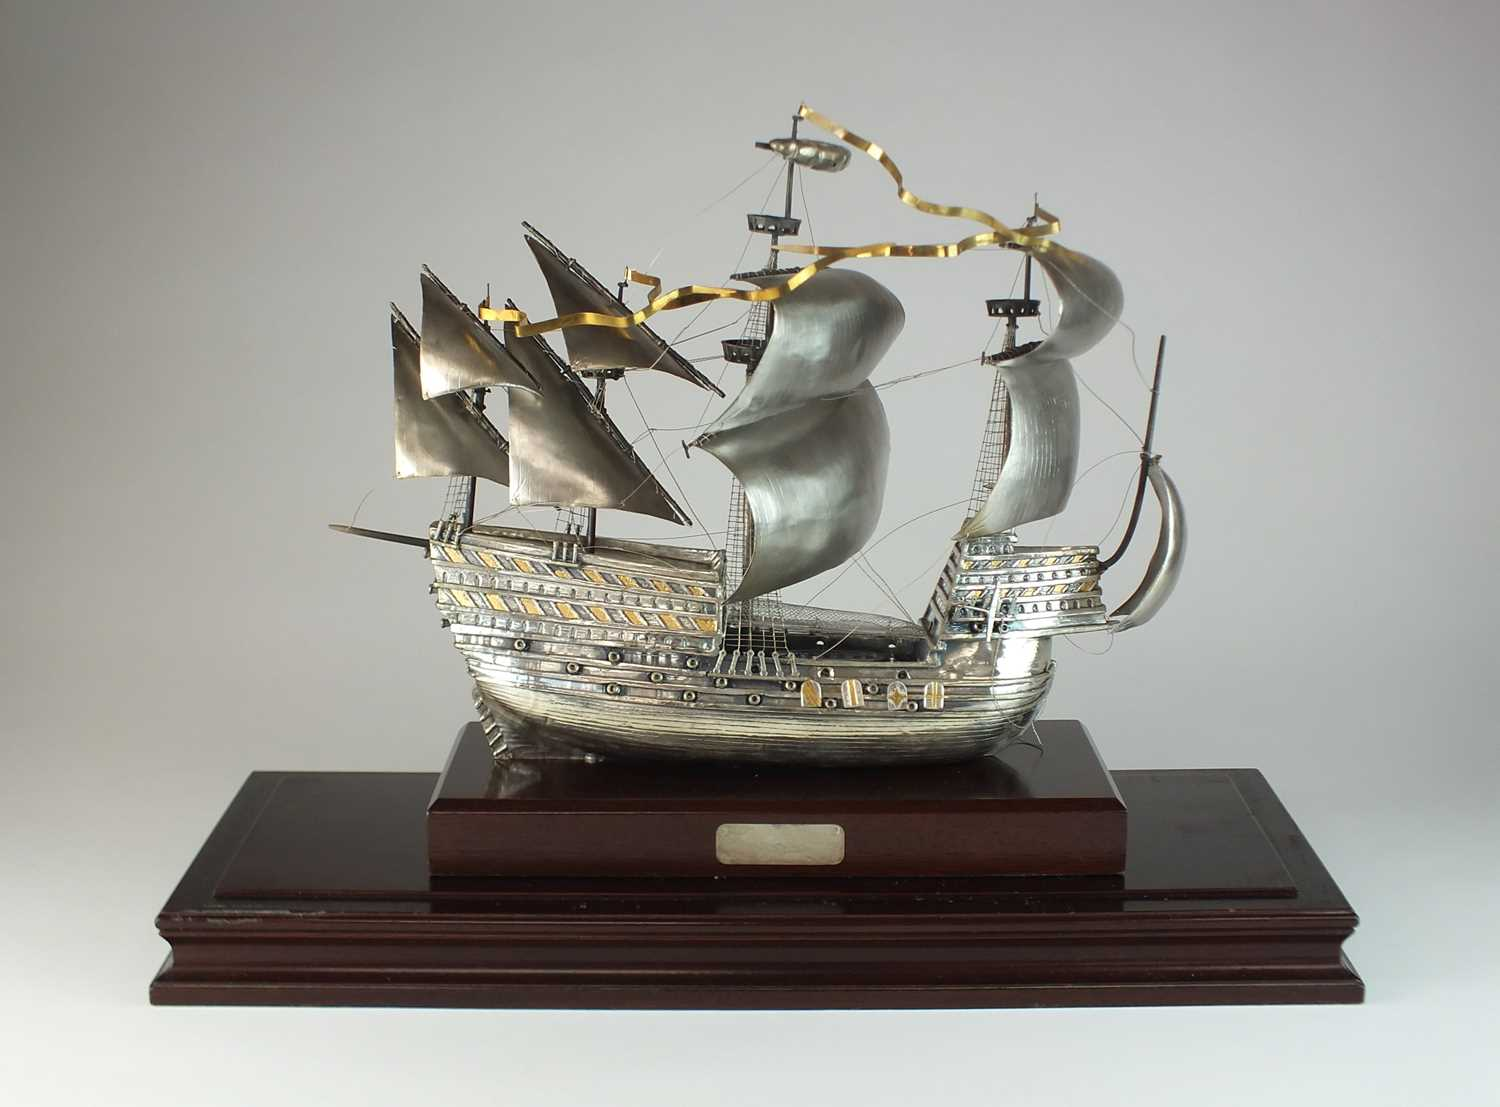 6 - A large silver model of Henry VIII's flagship the Mary Rose